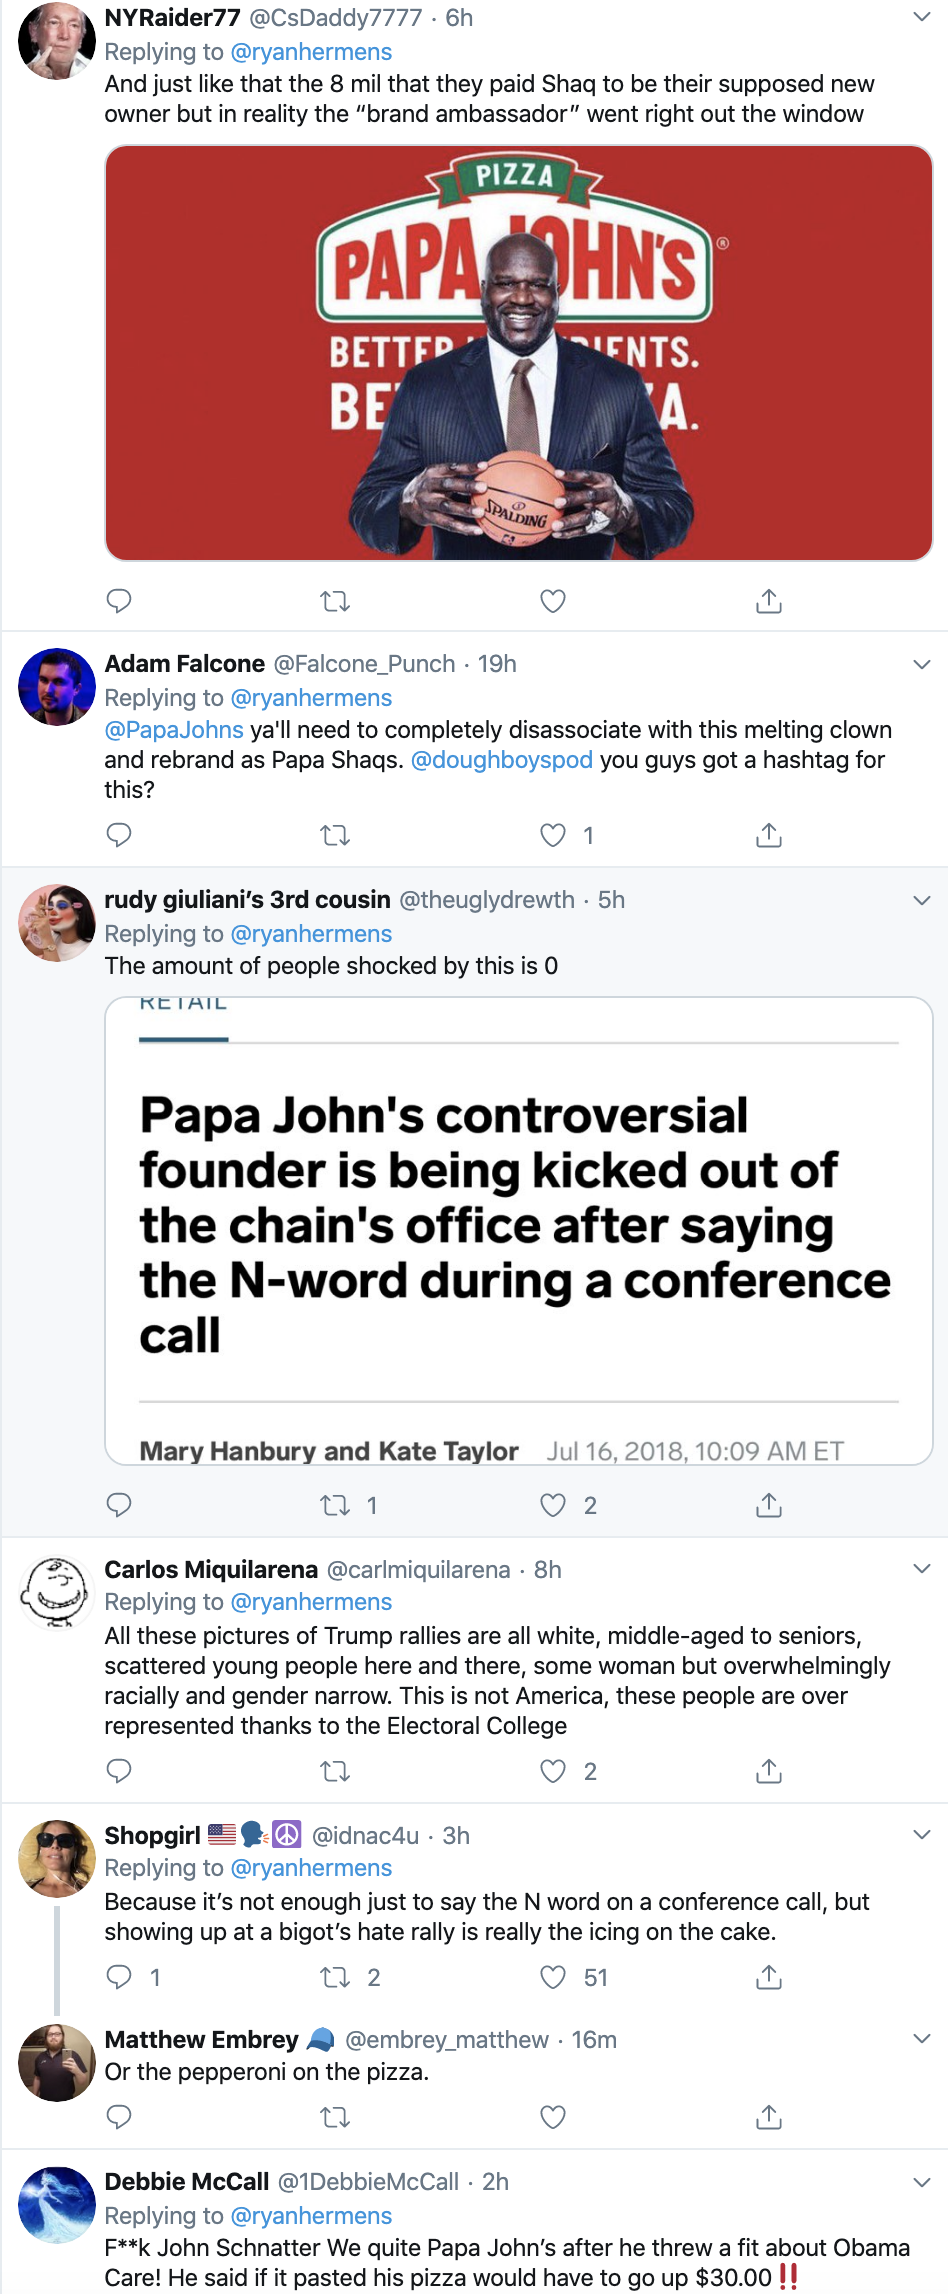 Screen-Shot-2019-11-06-at-3.36.16-PM Papa John Spotted A Trump Rally & It's Not Going Over Well (IMAGES) Corruption Crime Donald Trump Election 2020 Featured History Impeachment Investigation Politics Racism Top Stories